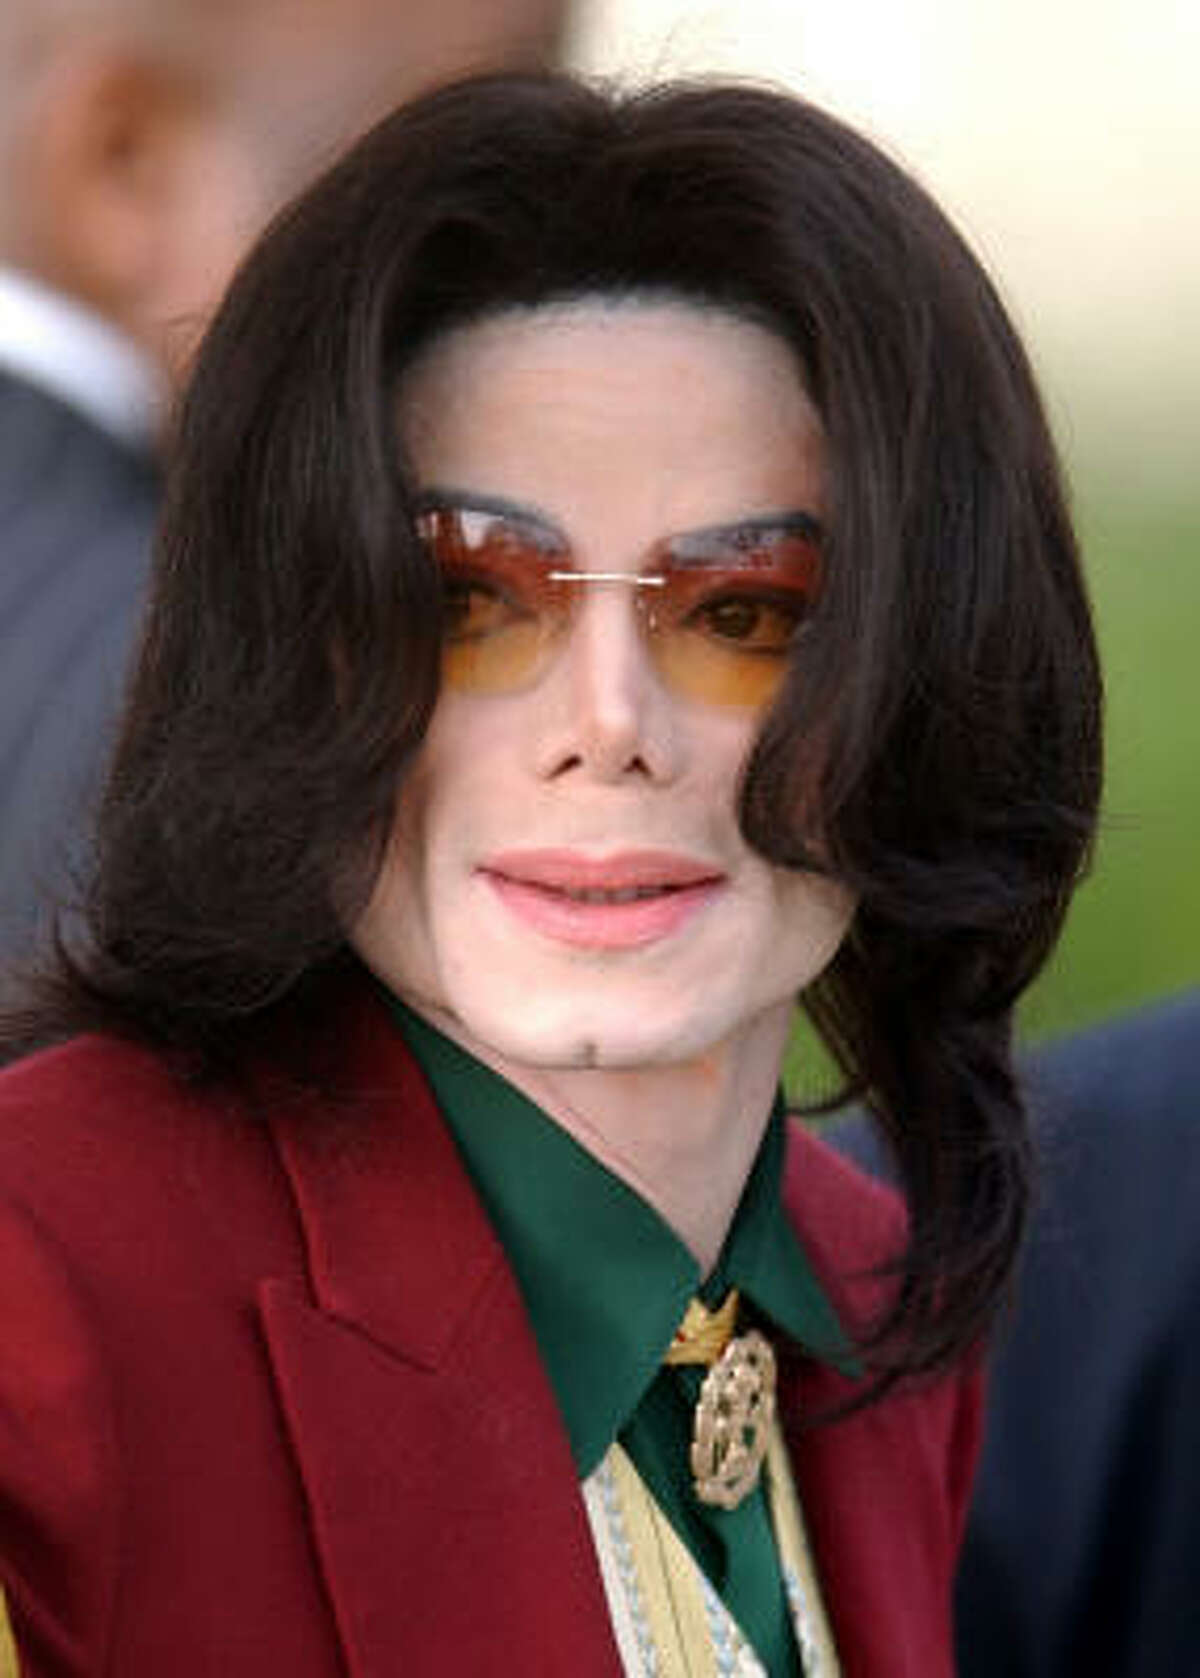 Are we surprised that Michael Jackson was found with drugs in his system when he died? We hear this story way too often. Here are celebs that have gone to rehab, or should. Read more of Ken Hoffman's column on this topic here.